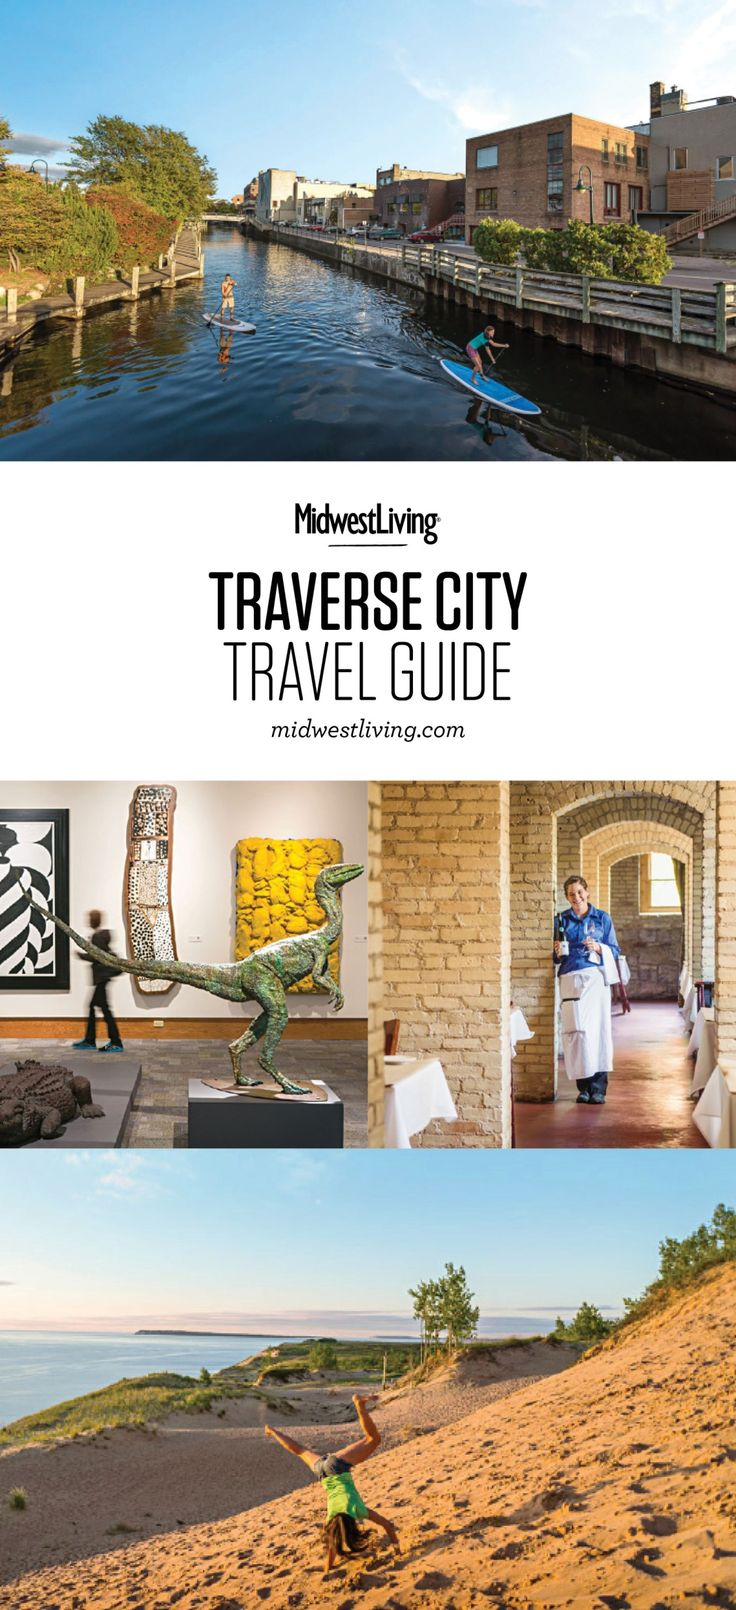 Paddleboarding, biking, sailing and dune-climbing are just some of the things to do in the Traverse City area. Wineries, high-end restaurants and activity-filled resorts keep days busy, too. Check out our guide to what to do, where to eat and where to stay in the Traverse City area.